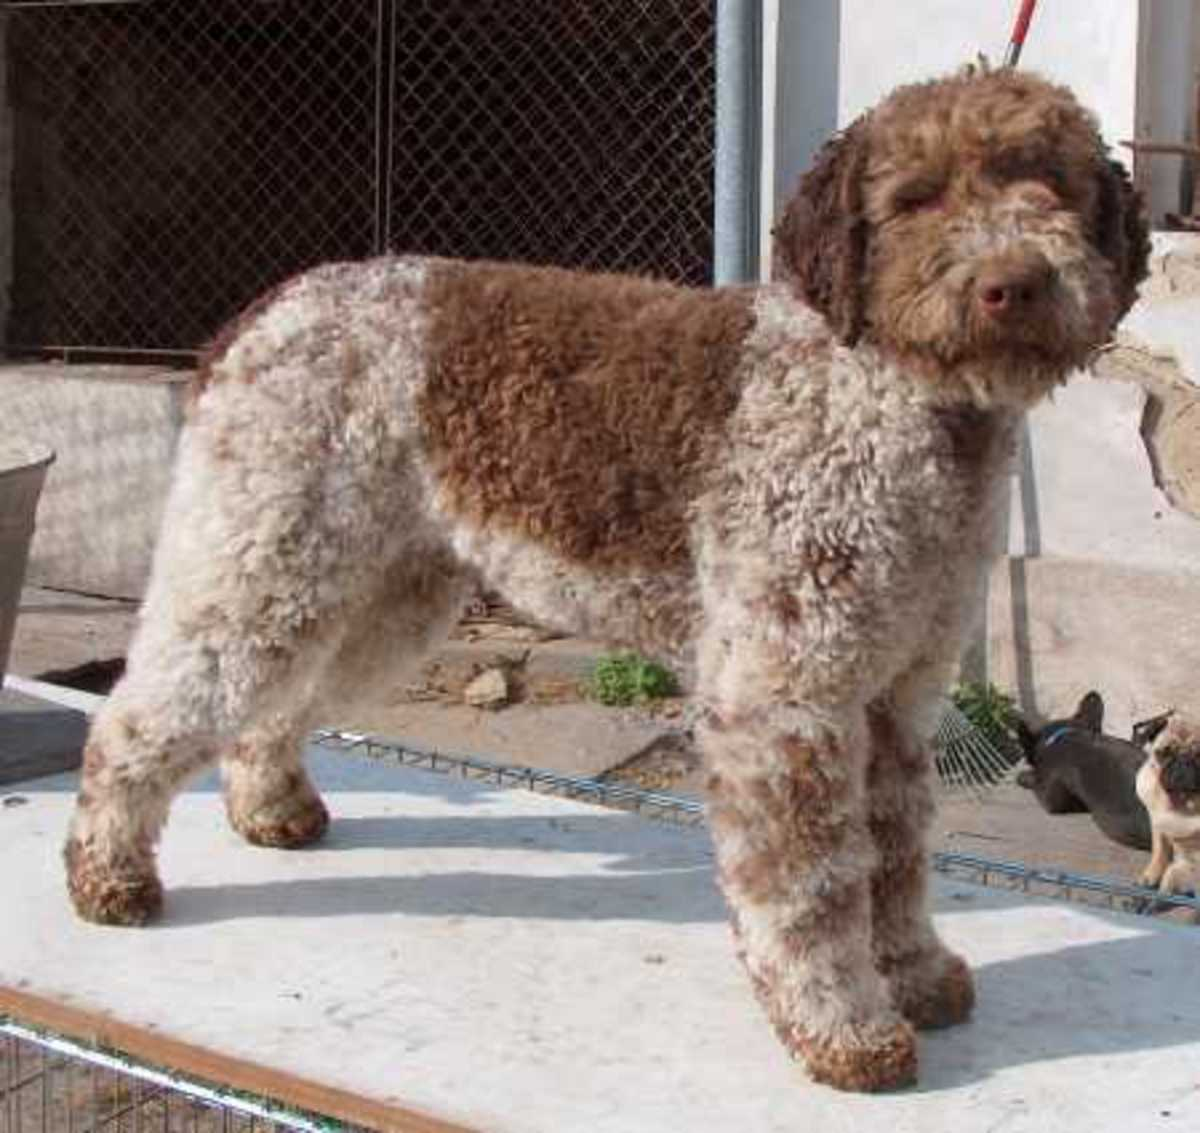 The Lagotto Romagnolo breed is used for truffle hunting in Italy.